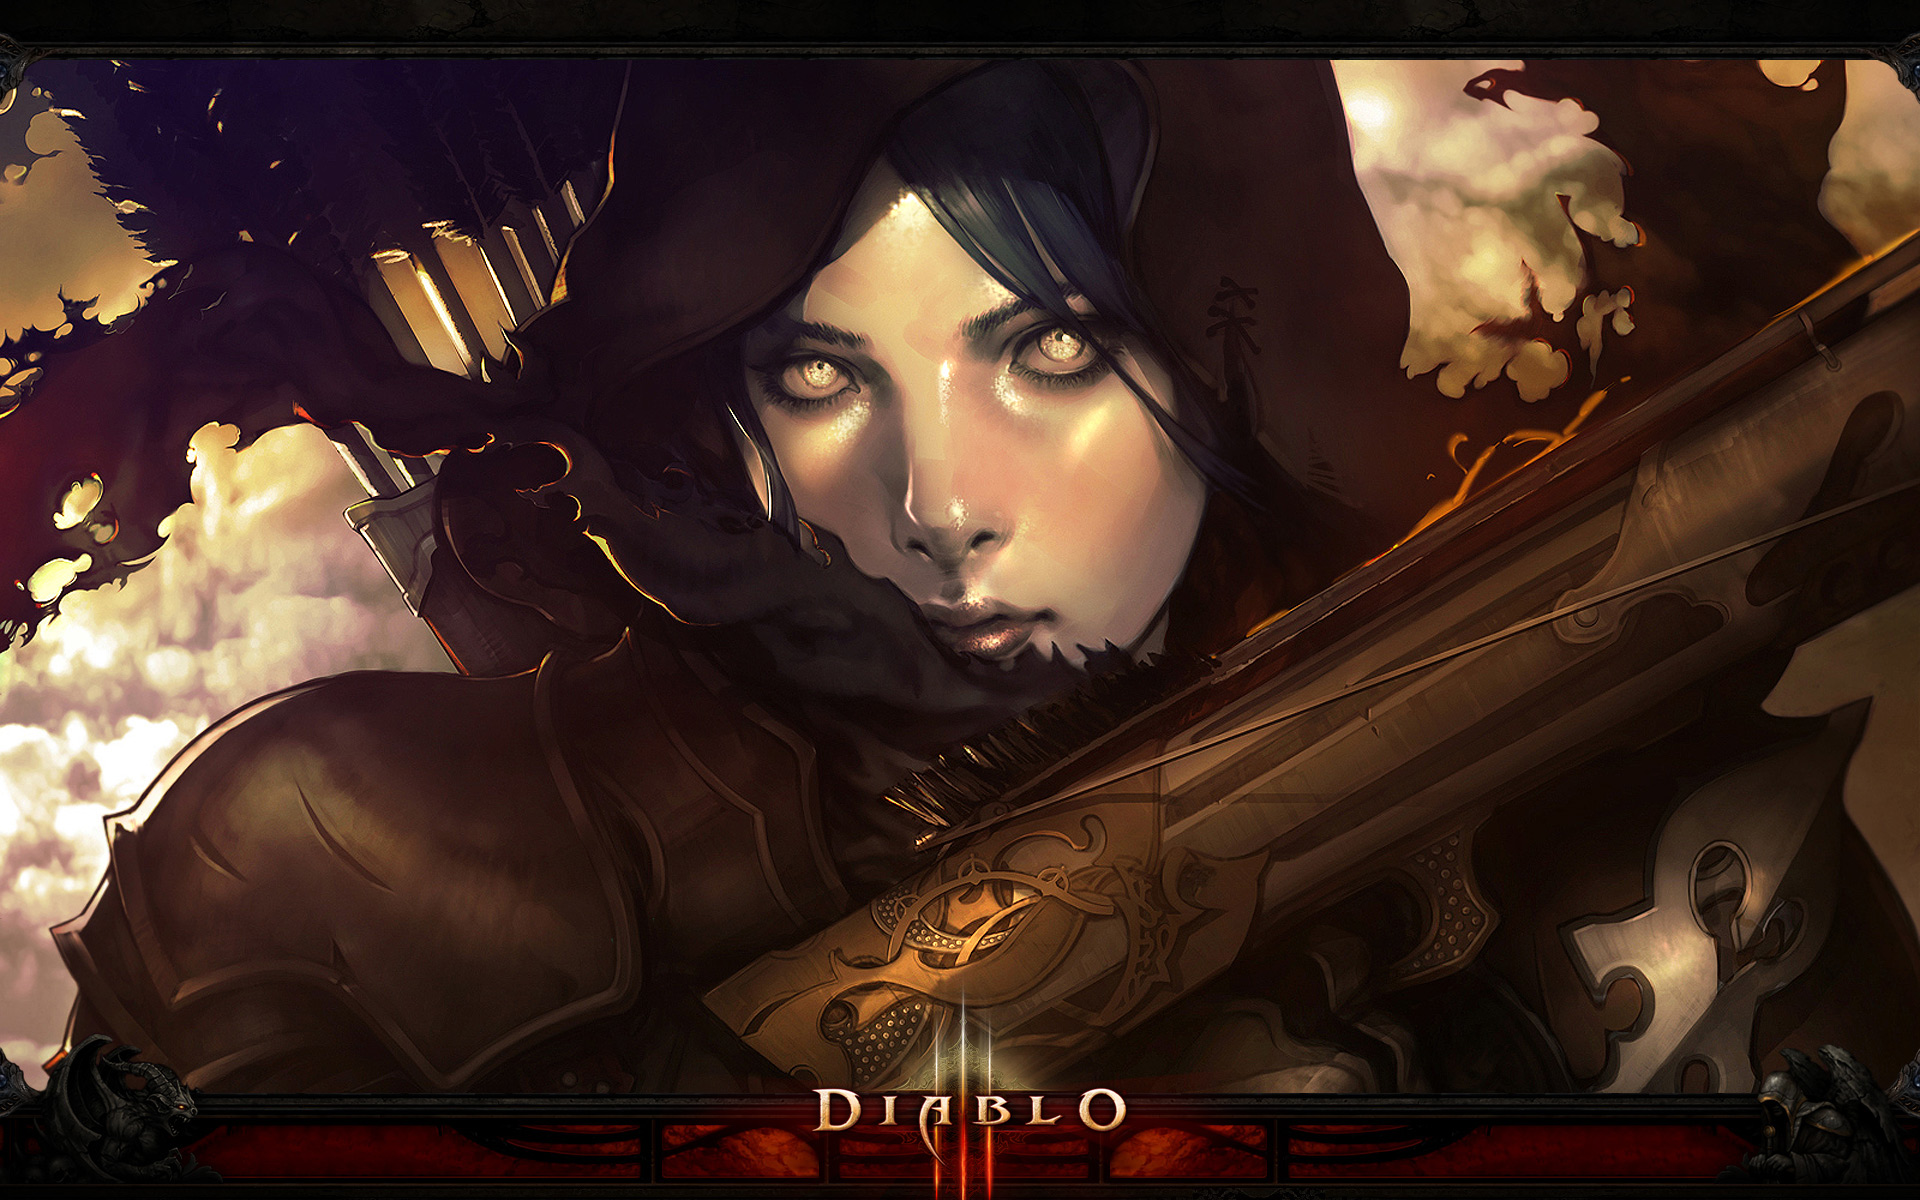 Diablo 3 demon hunter wallpaper 876838 for Demon hunter